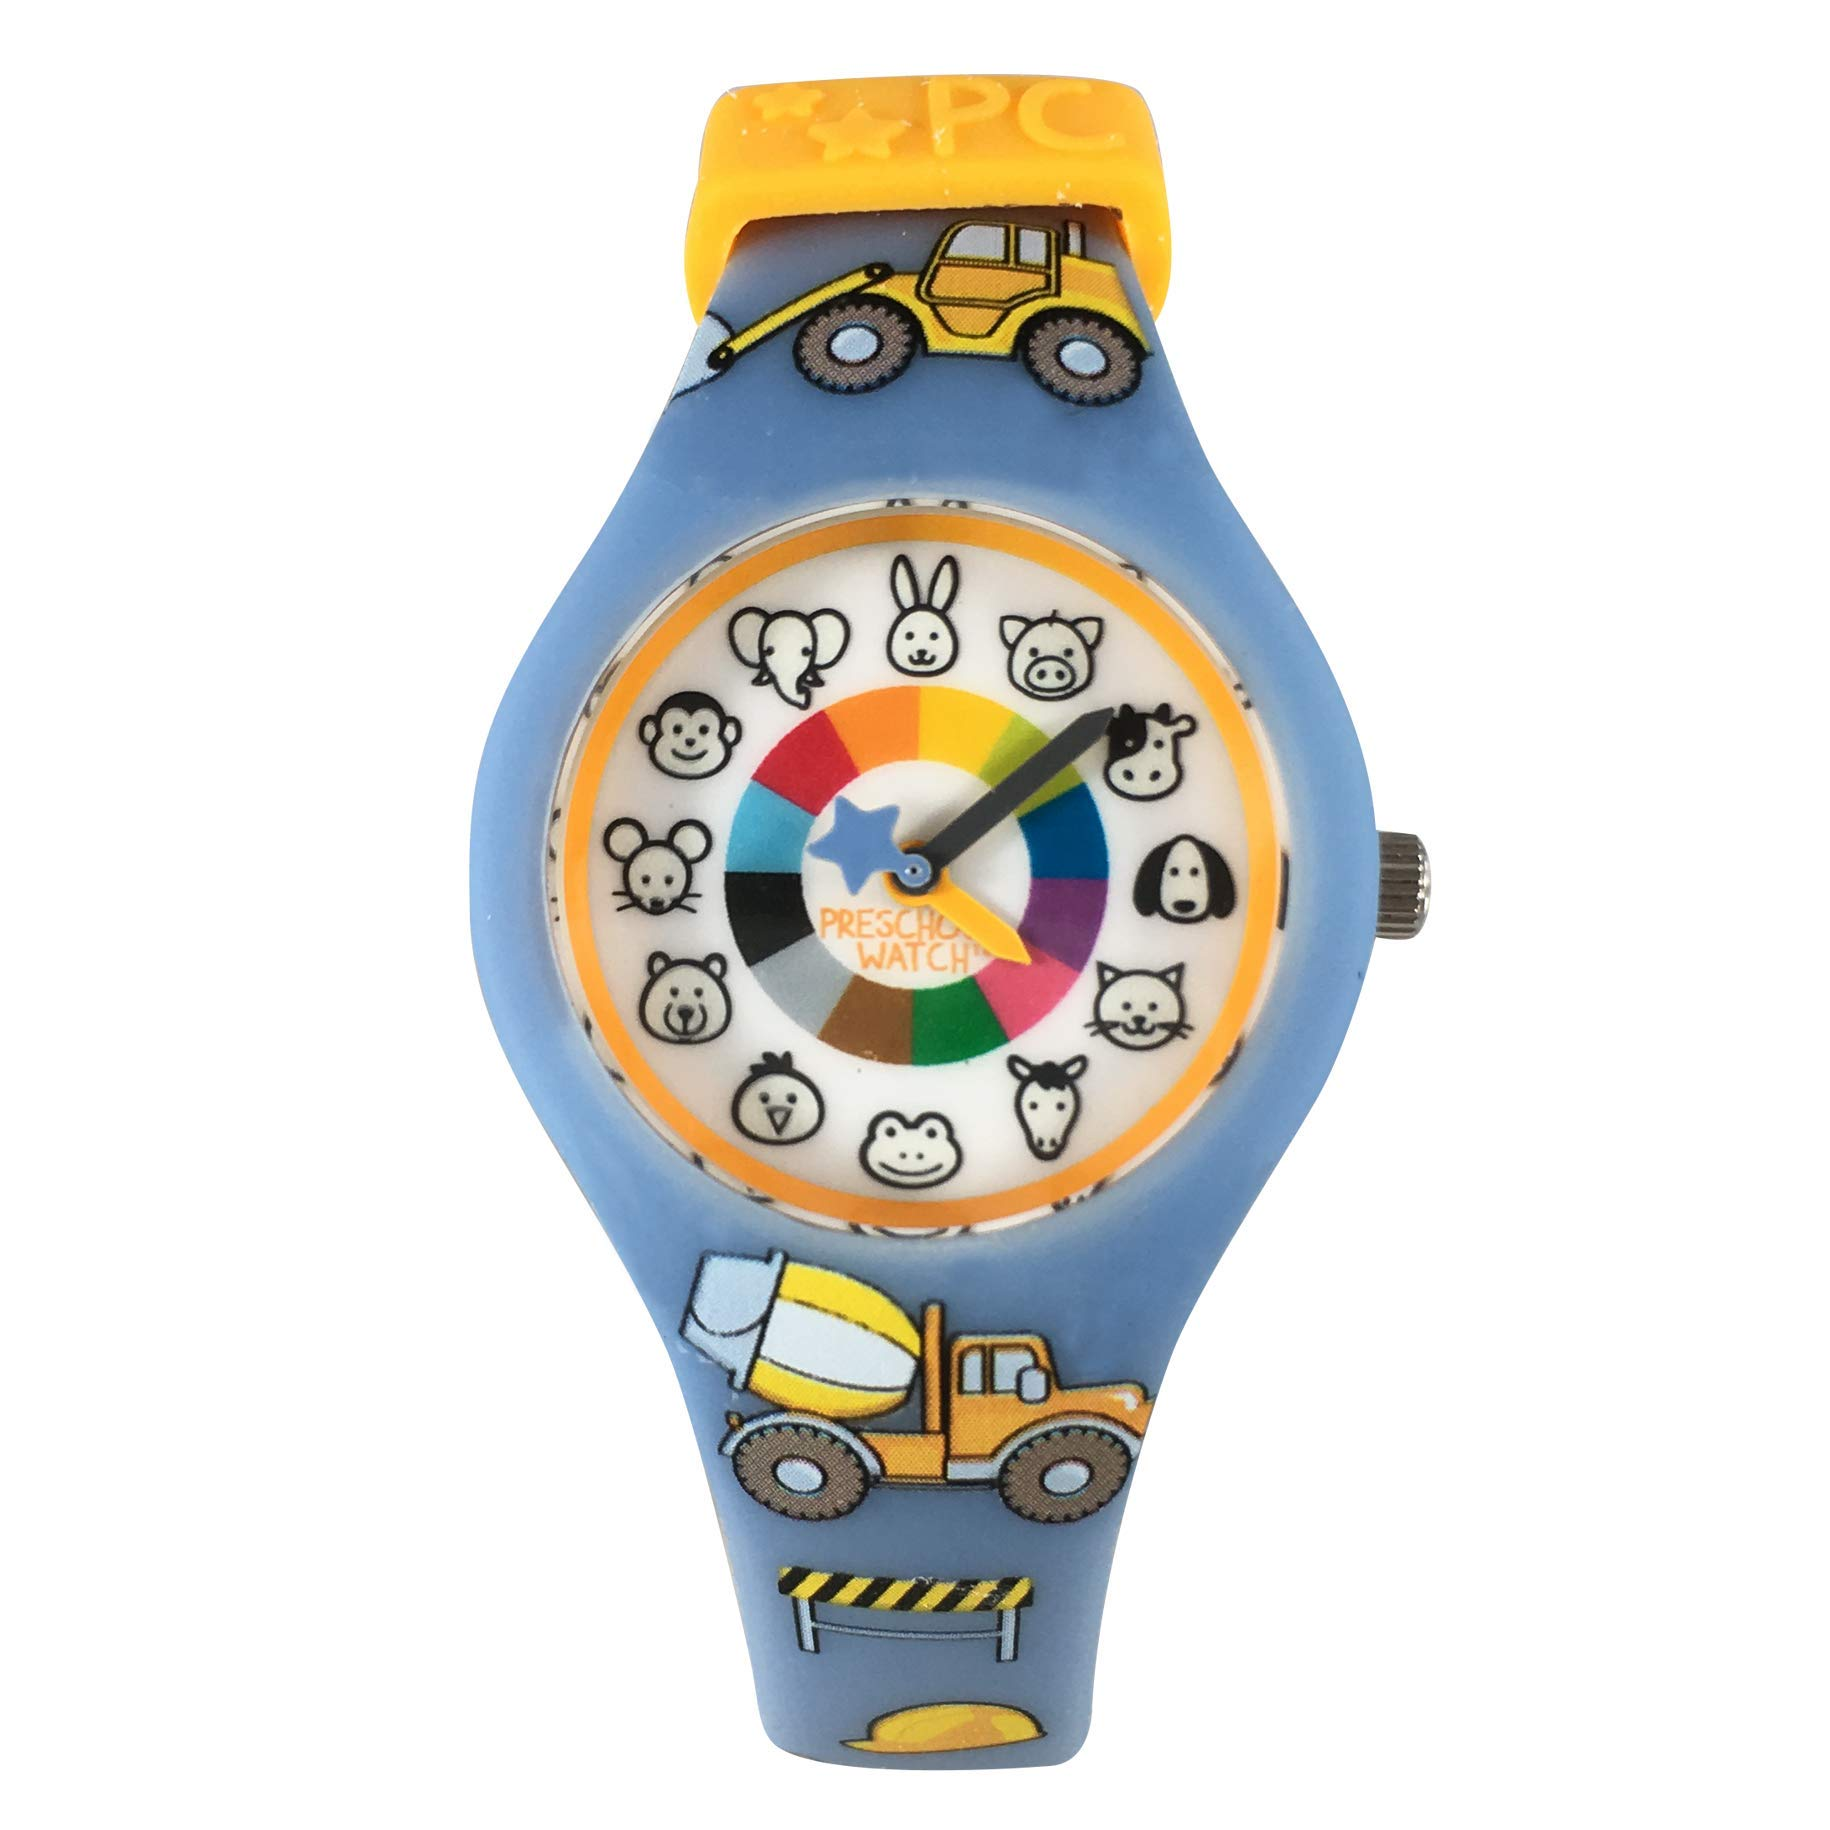 Trucks Preschool Watch - The Only Analog Kids Watch Preschoolers Understand! Quality Teaching time Silicone Watch with Glow-in-The-Dark Dial & Japan Movement by PRESCHOOL COLLECTION